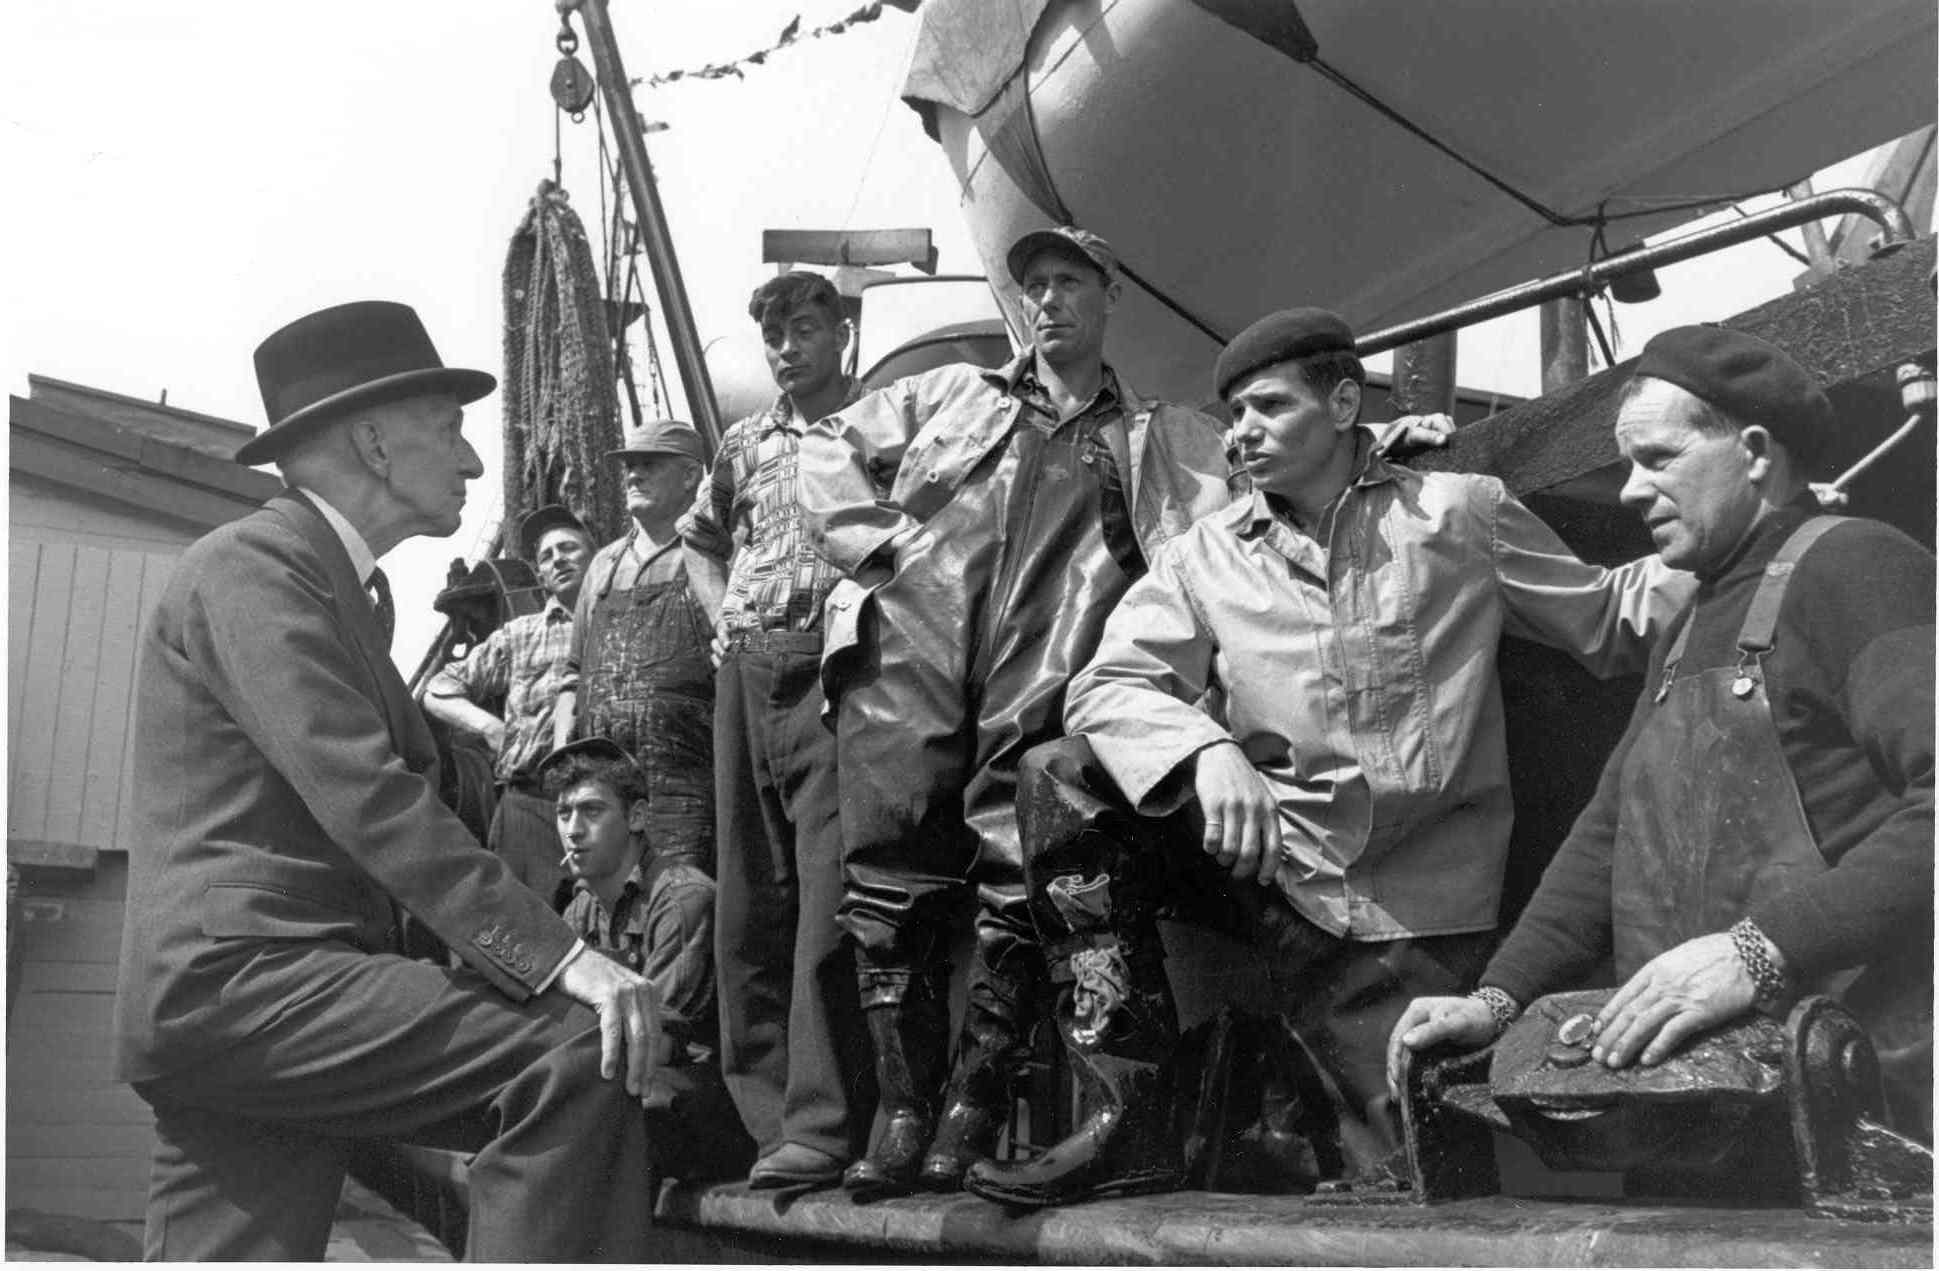 Governor General Vincent Massey speaks with a group of fishermen (St. John's, Newfoundland). Date: August 1955. Photographer: Gar Lunney, National Film Board of Canada. Reference: National Archives of Canada, PA-211709.